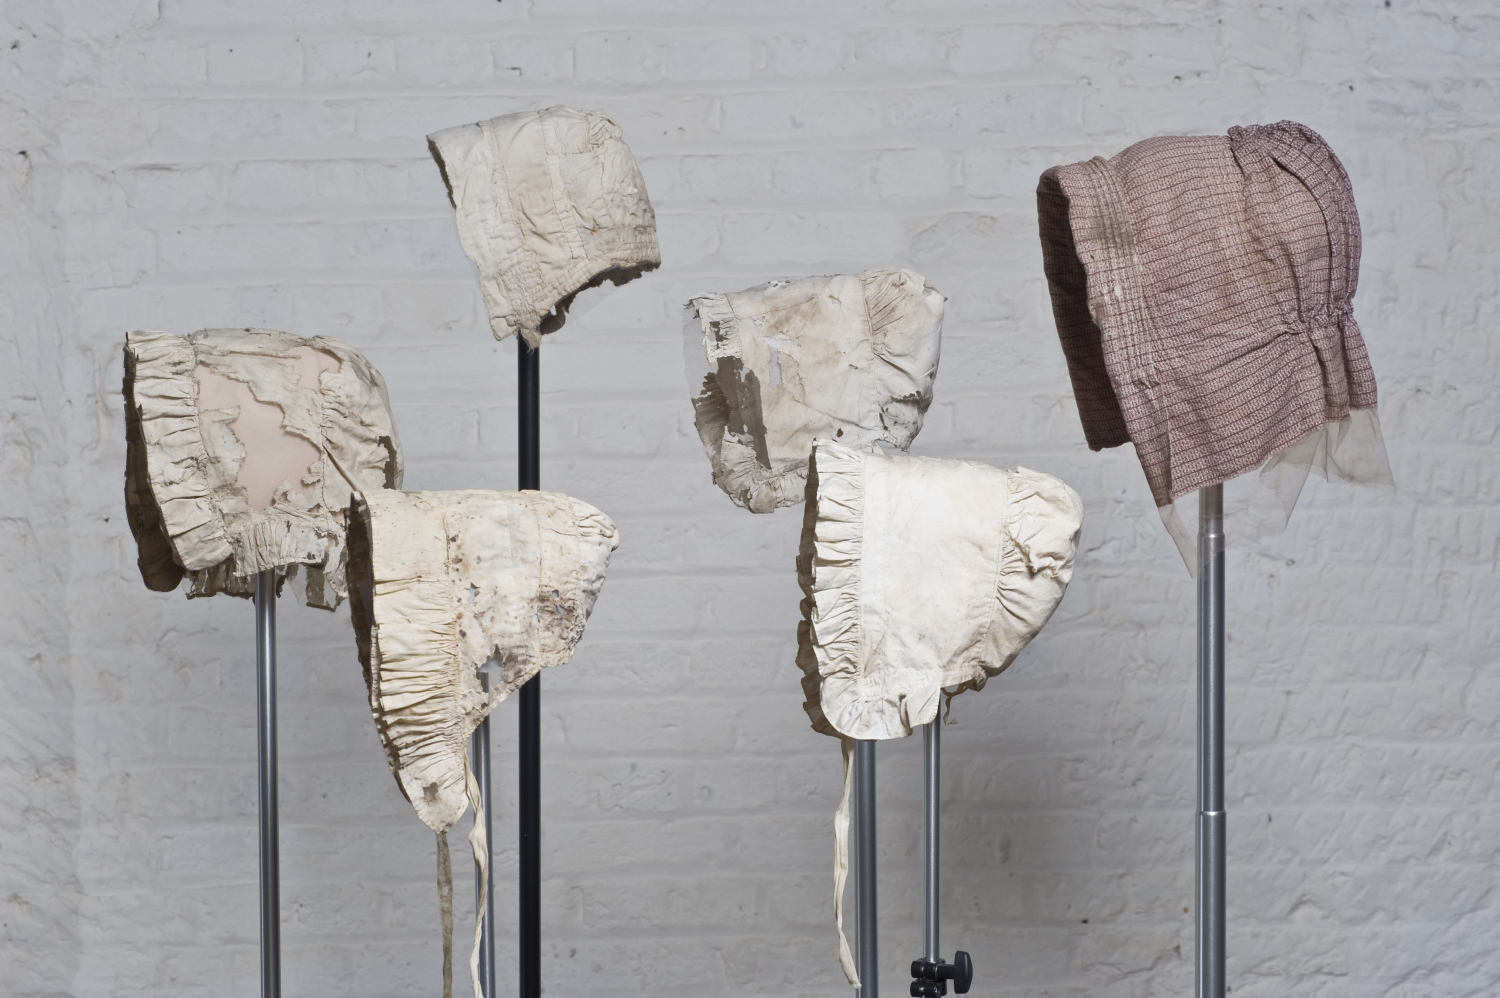 A collection cotton bonnets, displayed on stainless steel stands, photographed against a lime-white painted brick wall.